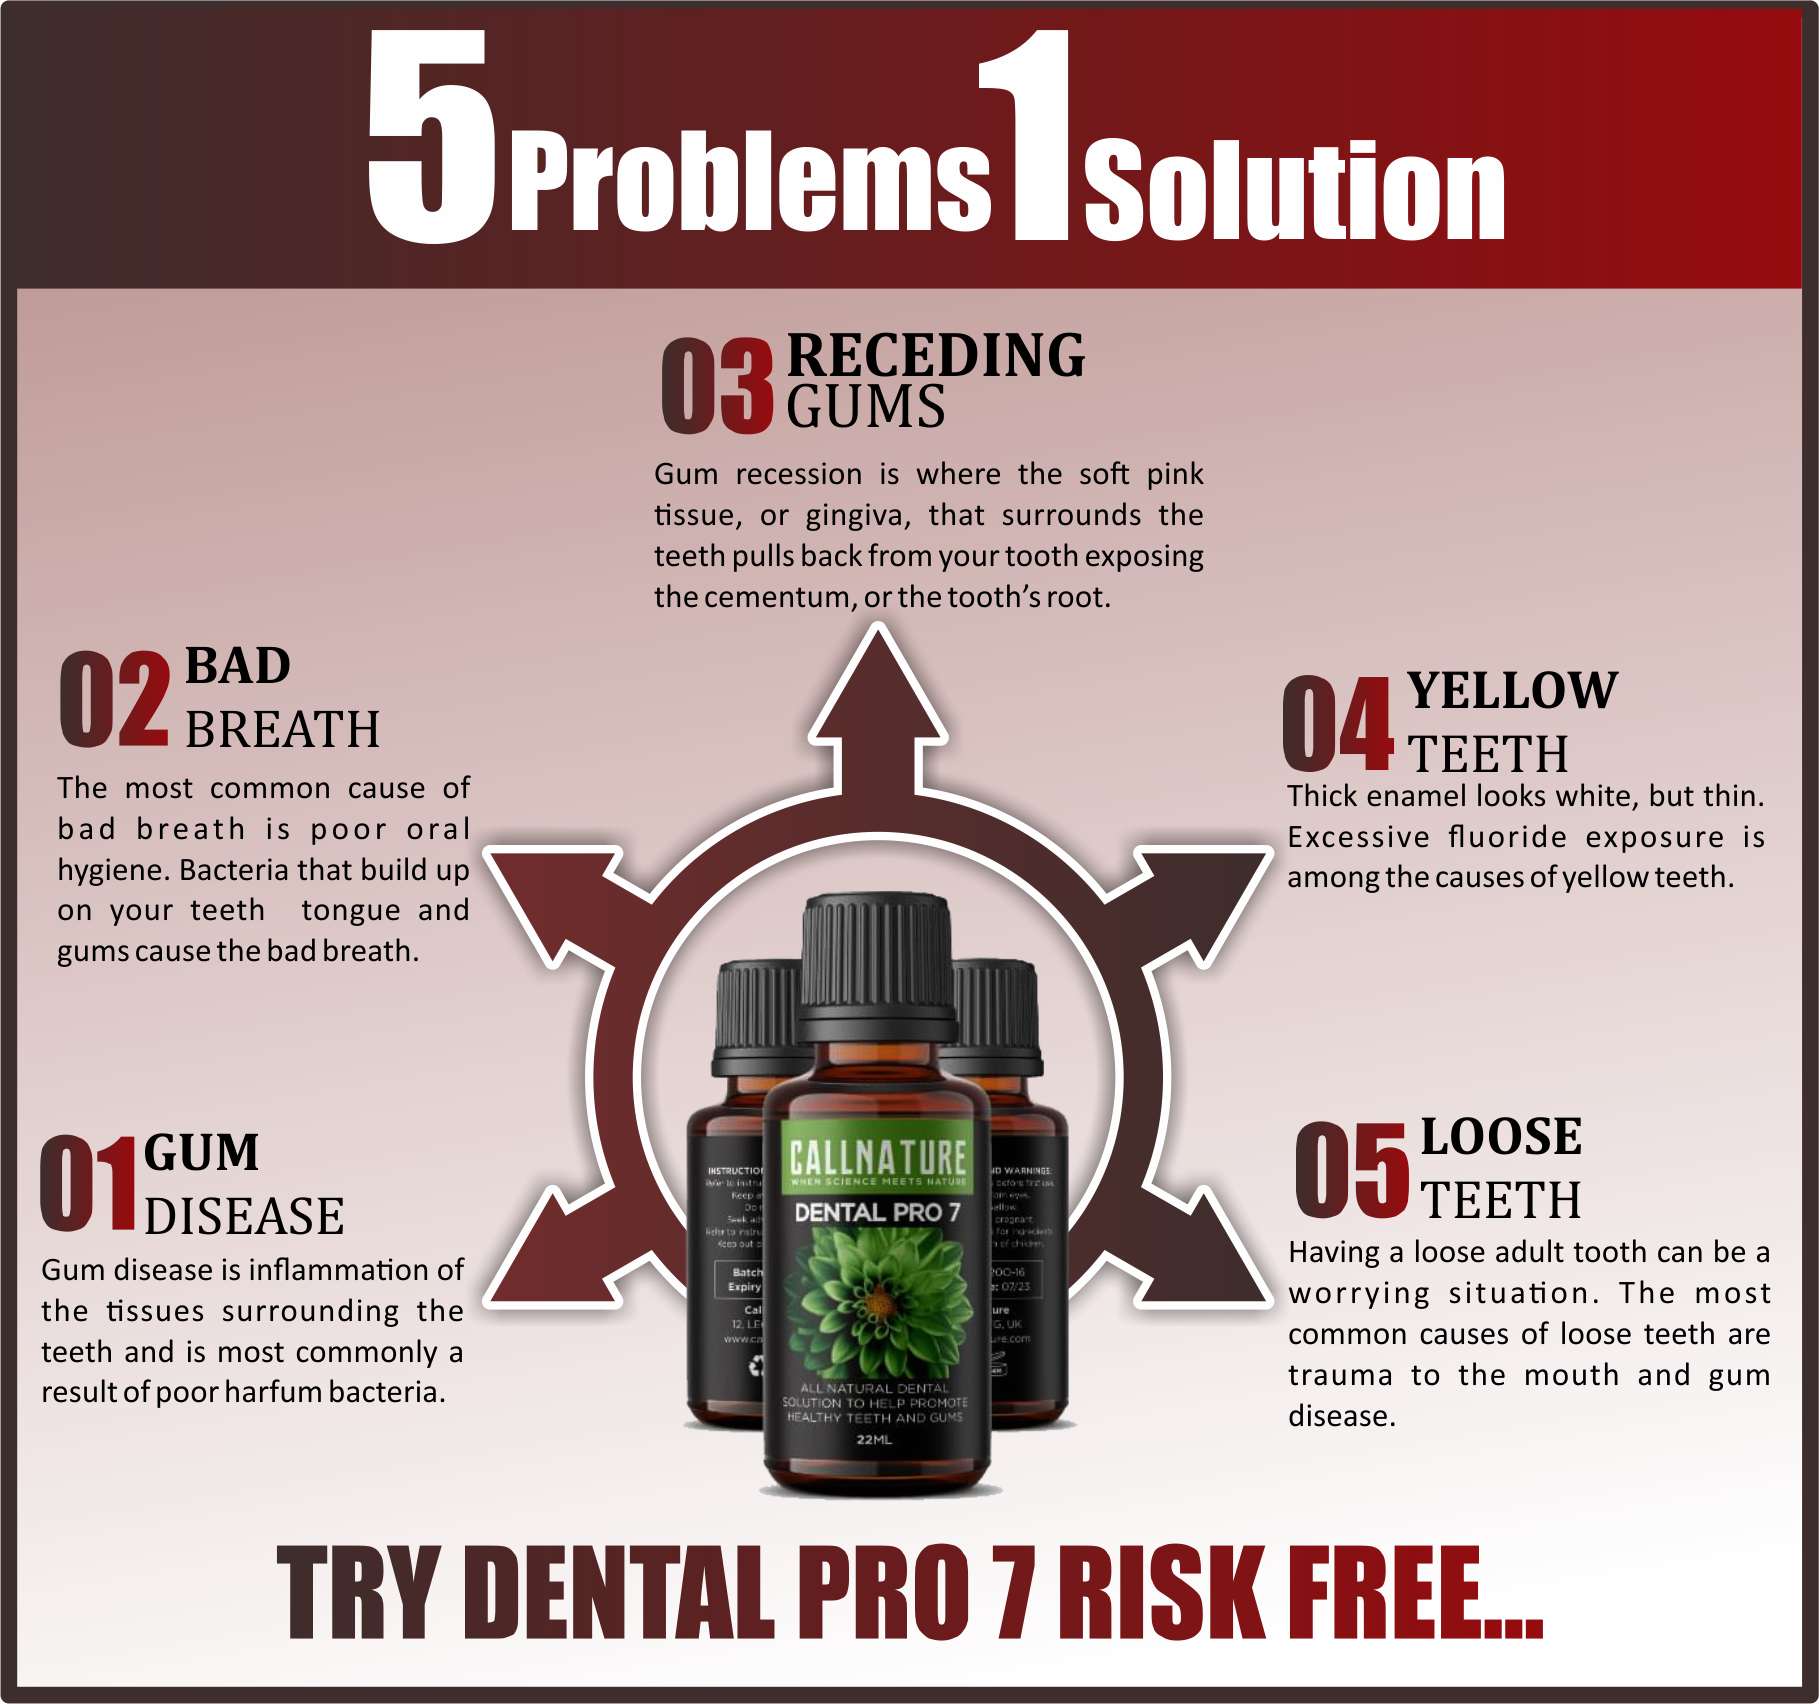 http://wellnessworkers.org/Dental-Pro-7-Official-Site